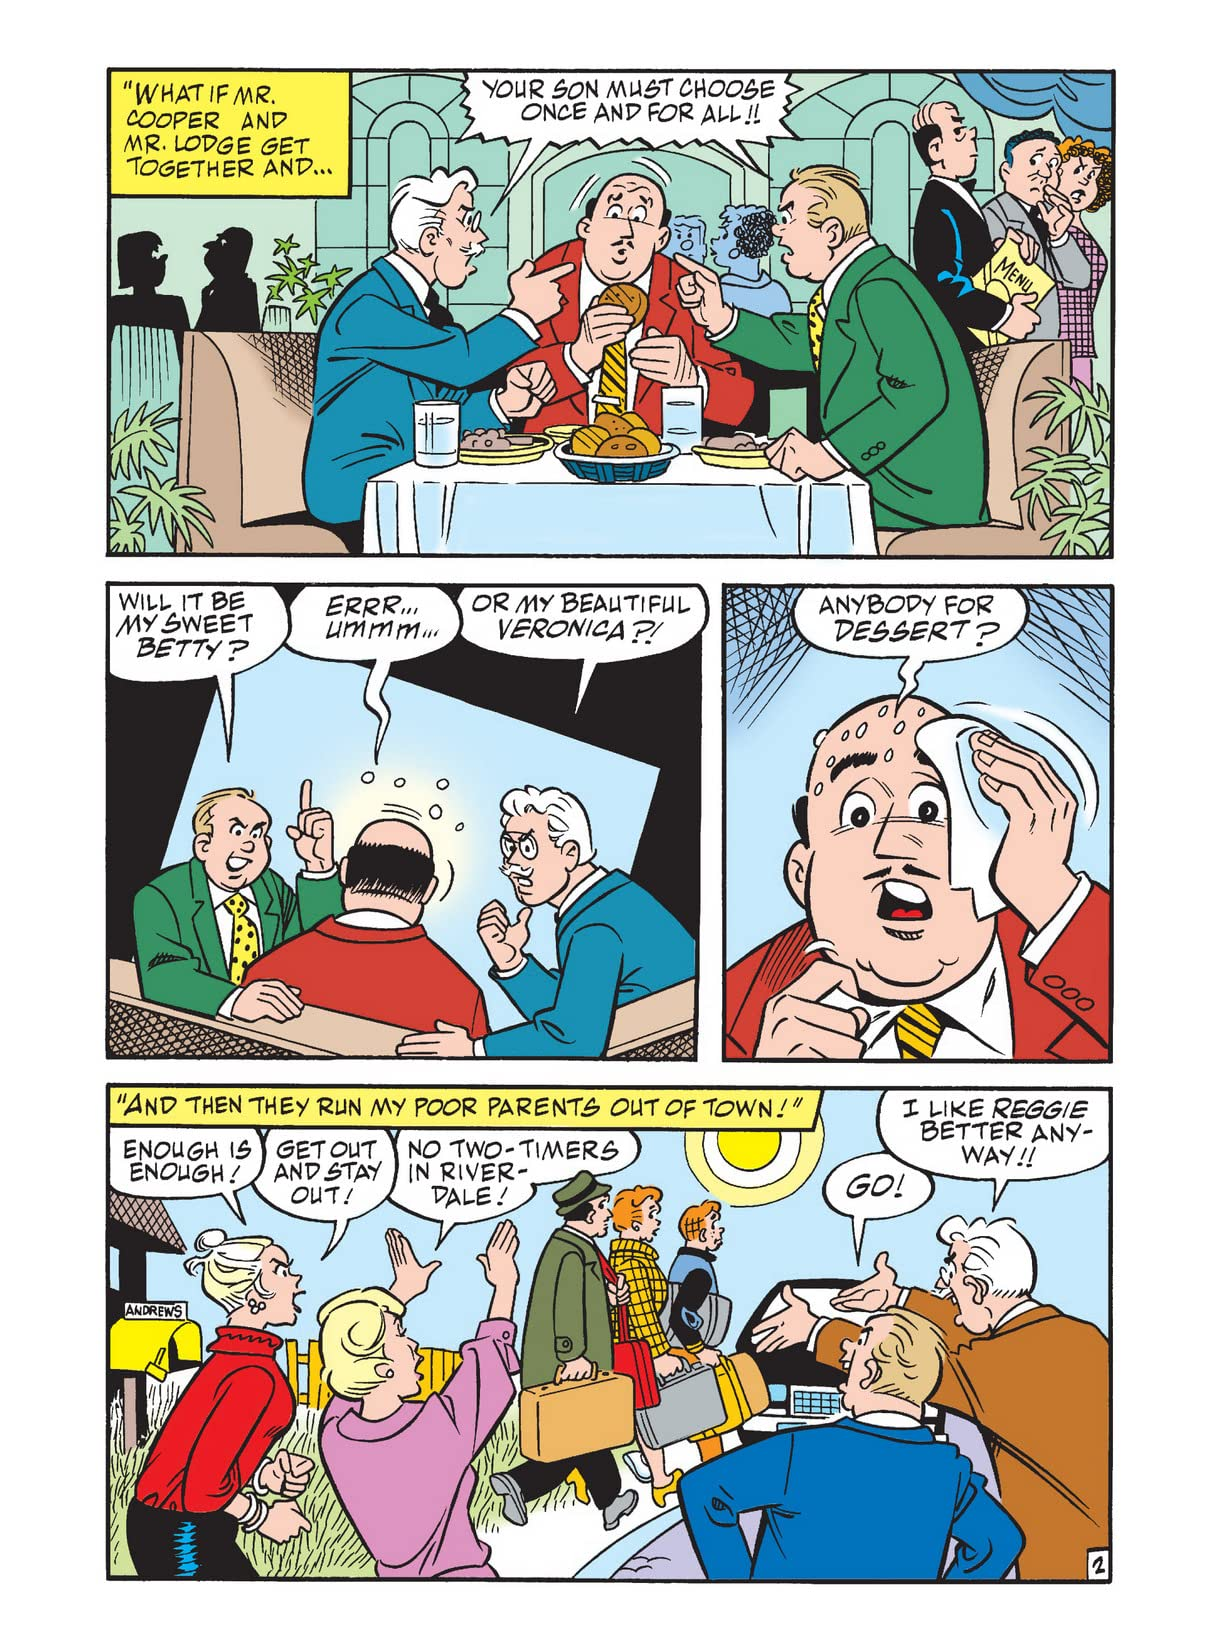 World of Archie Double Digest #26